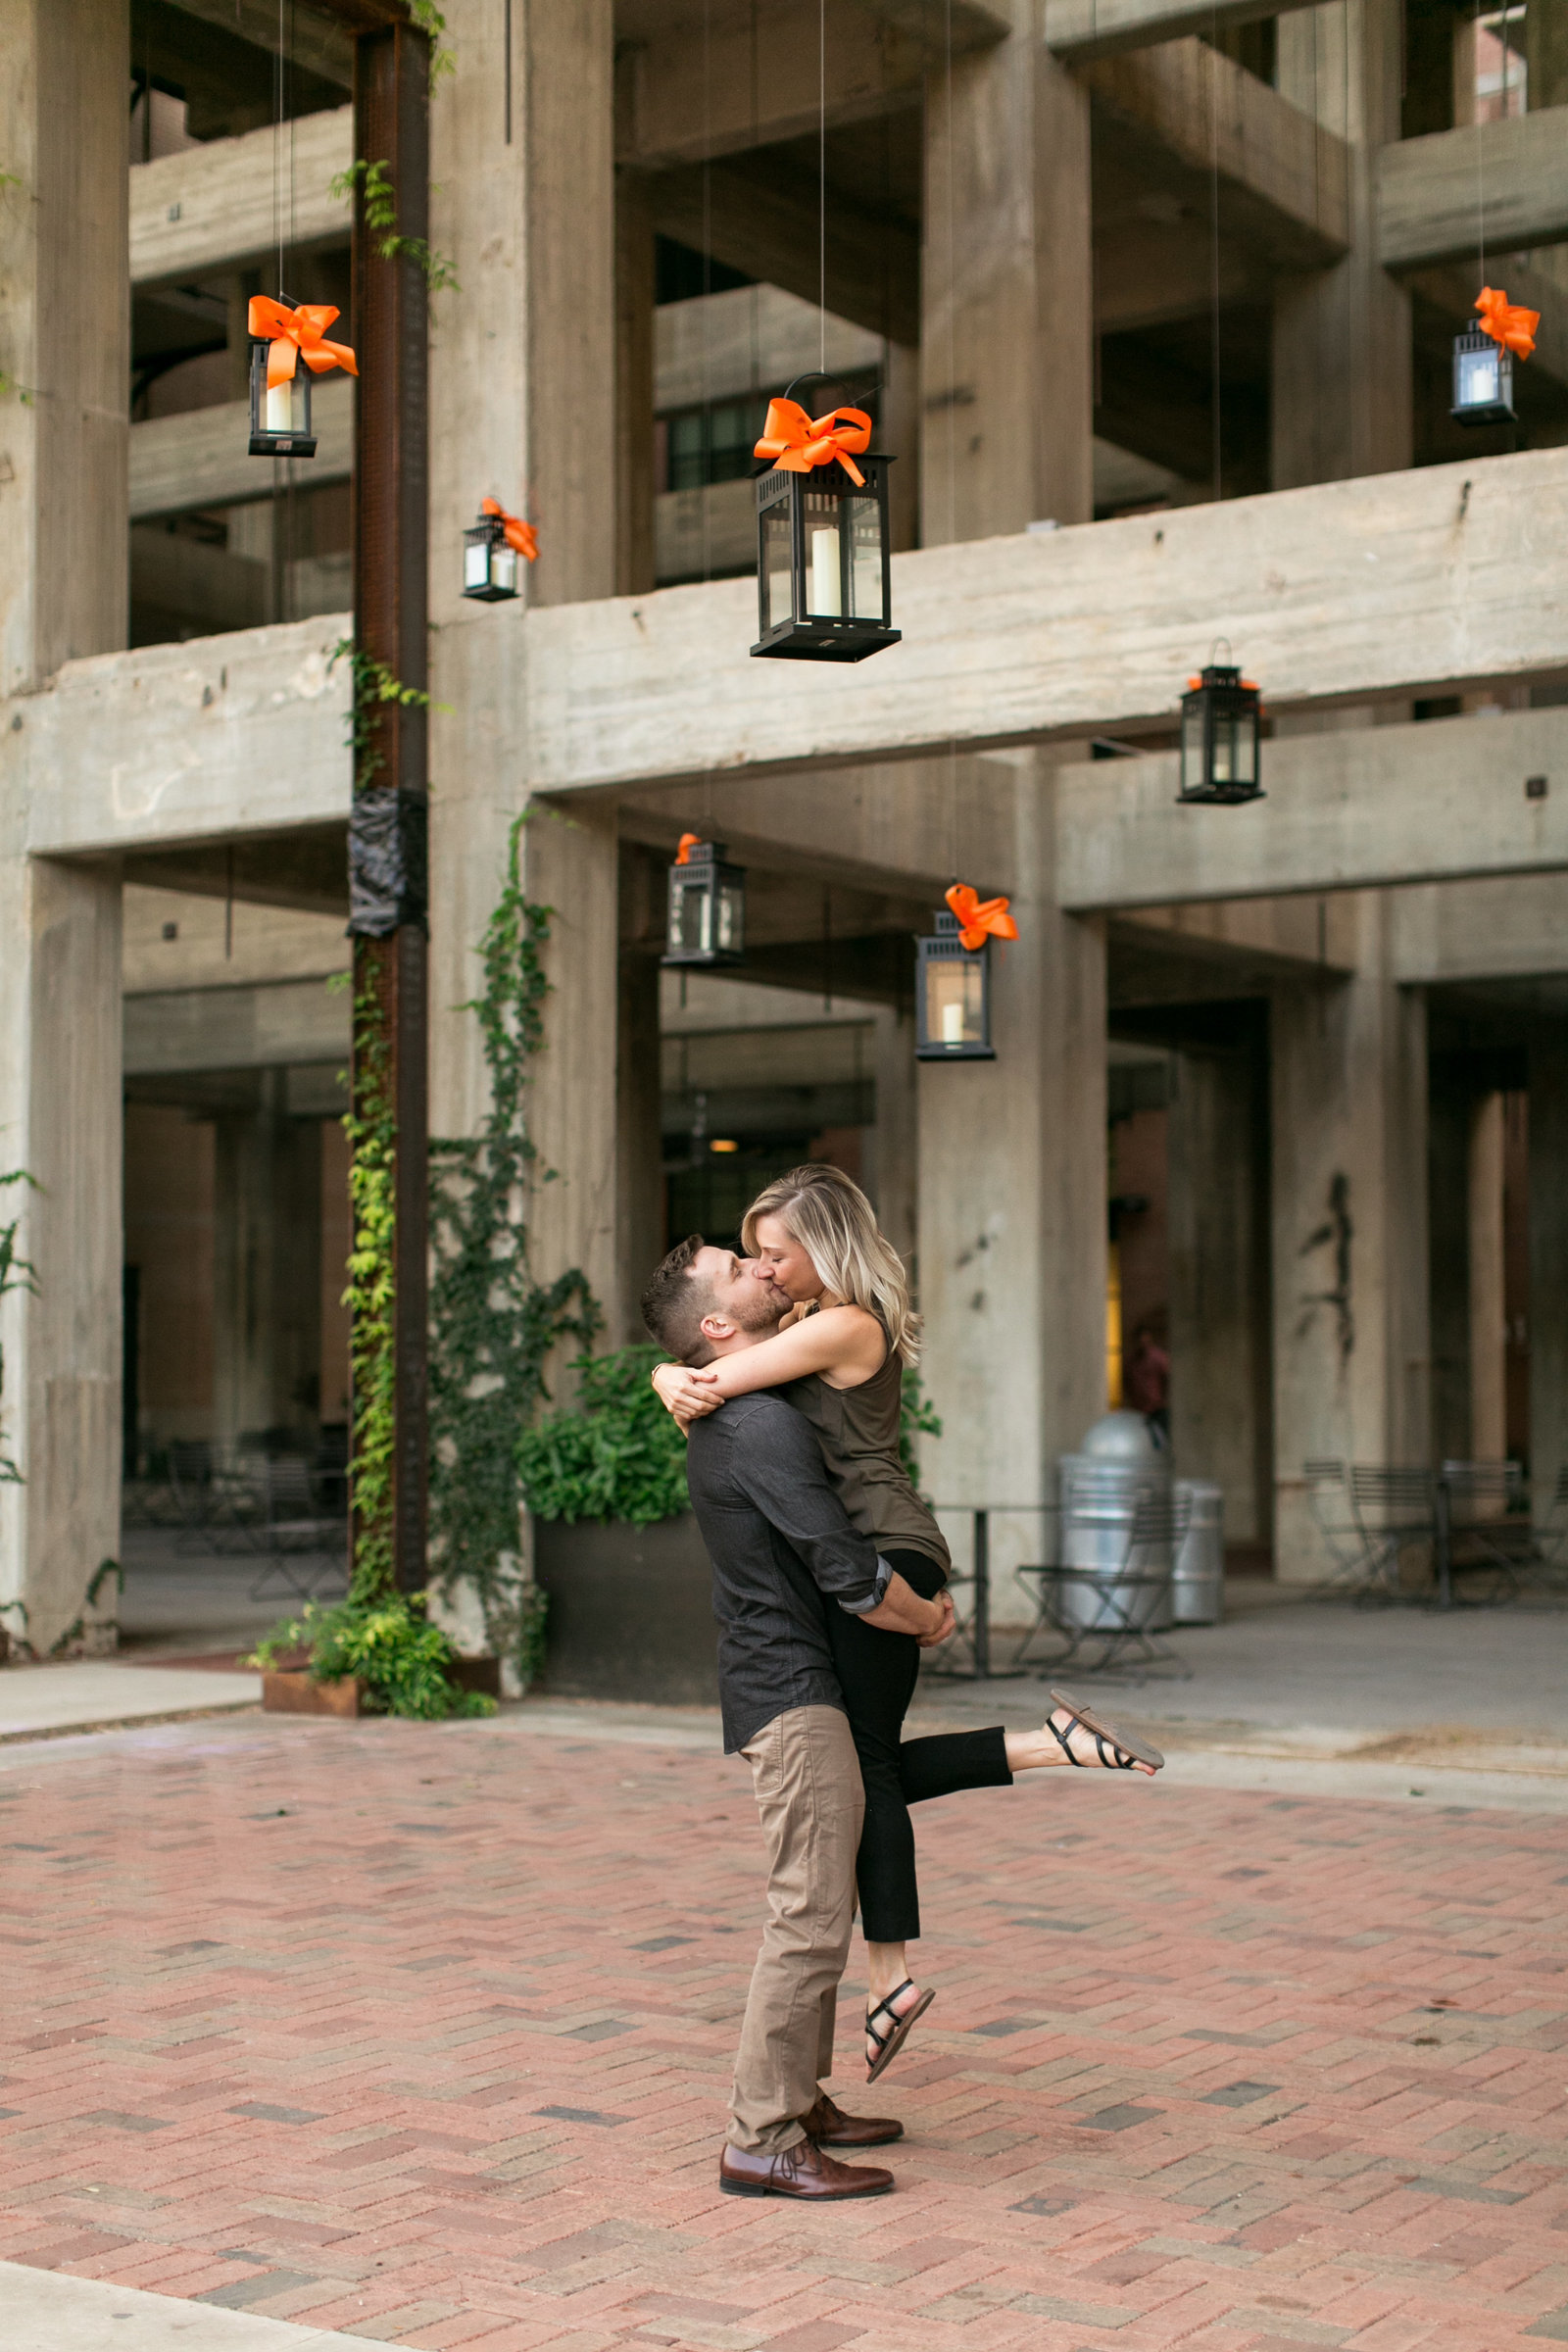 pearl-brewery-san-antonio-texas-engagement-session-river-walk-photo-185